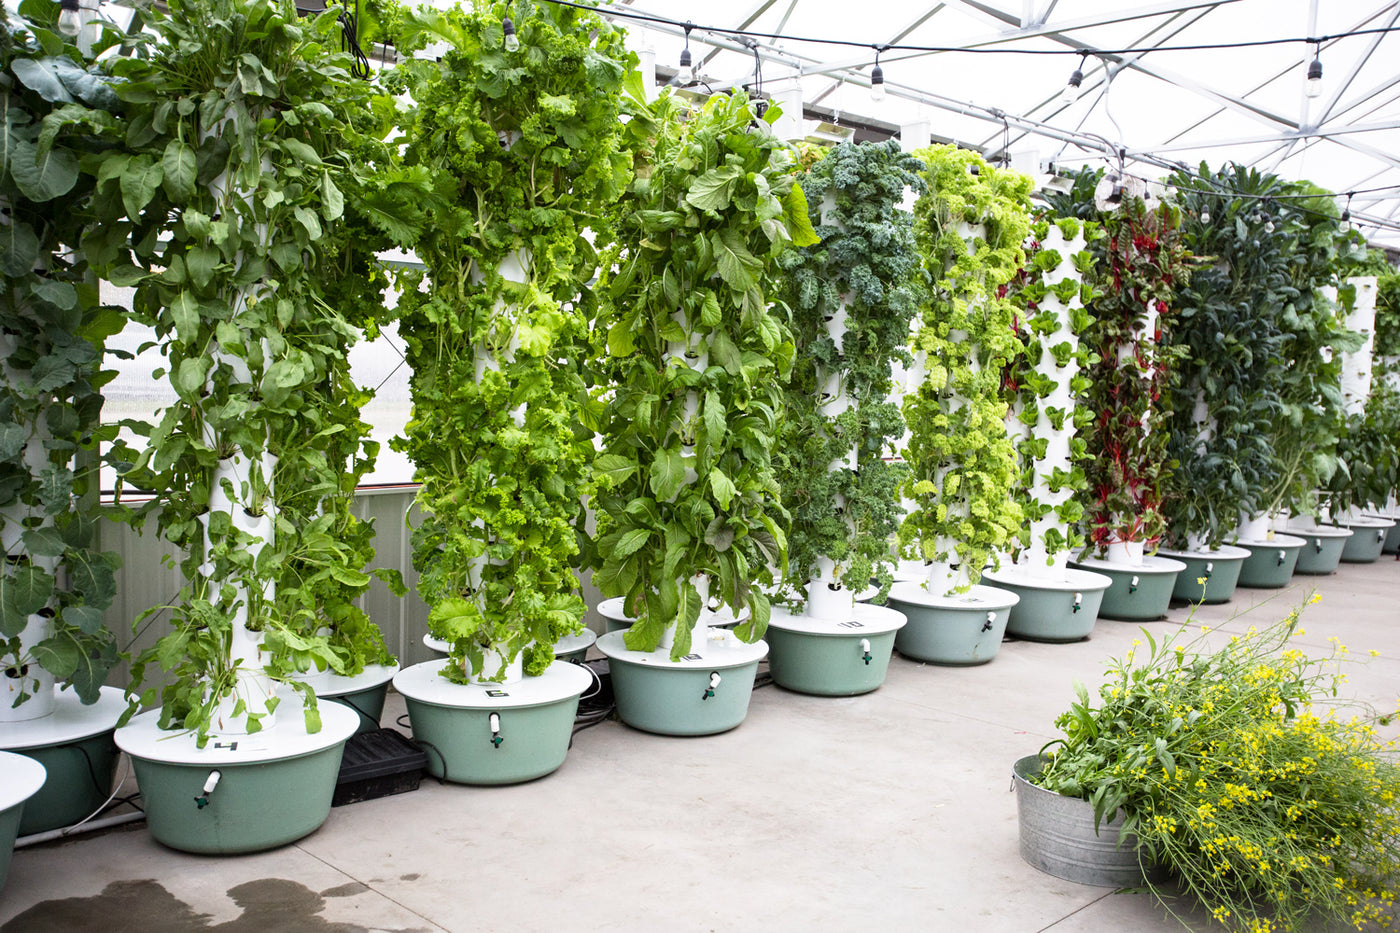 HYDROPONIC TOWERS, WHAT'S THE DEAL?